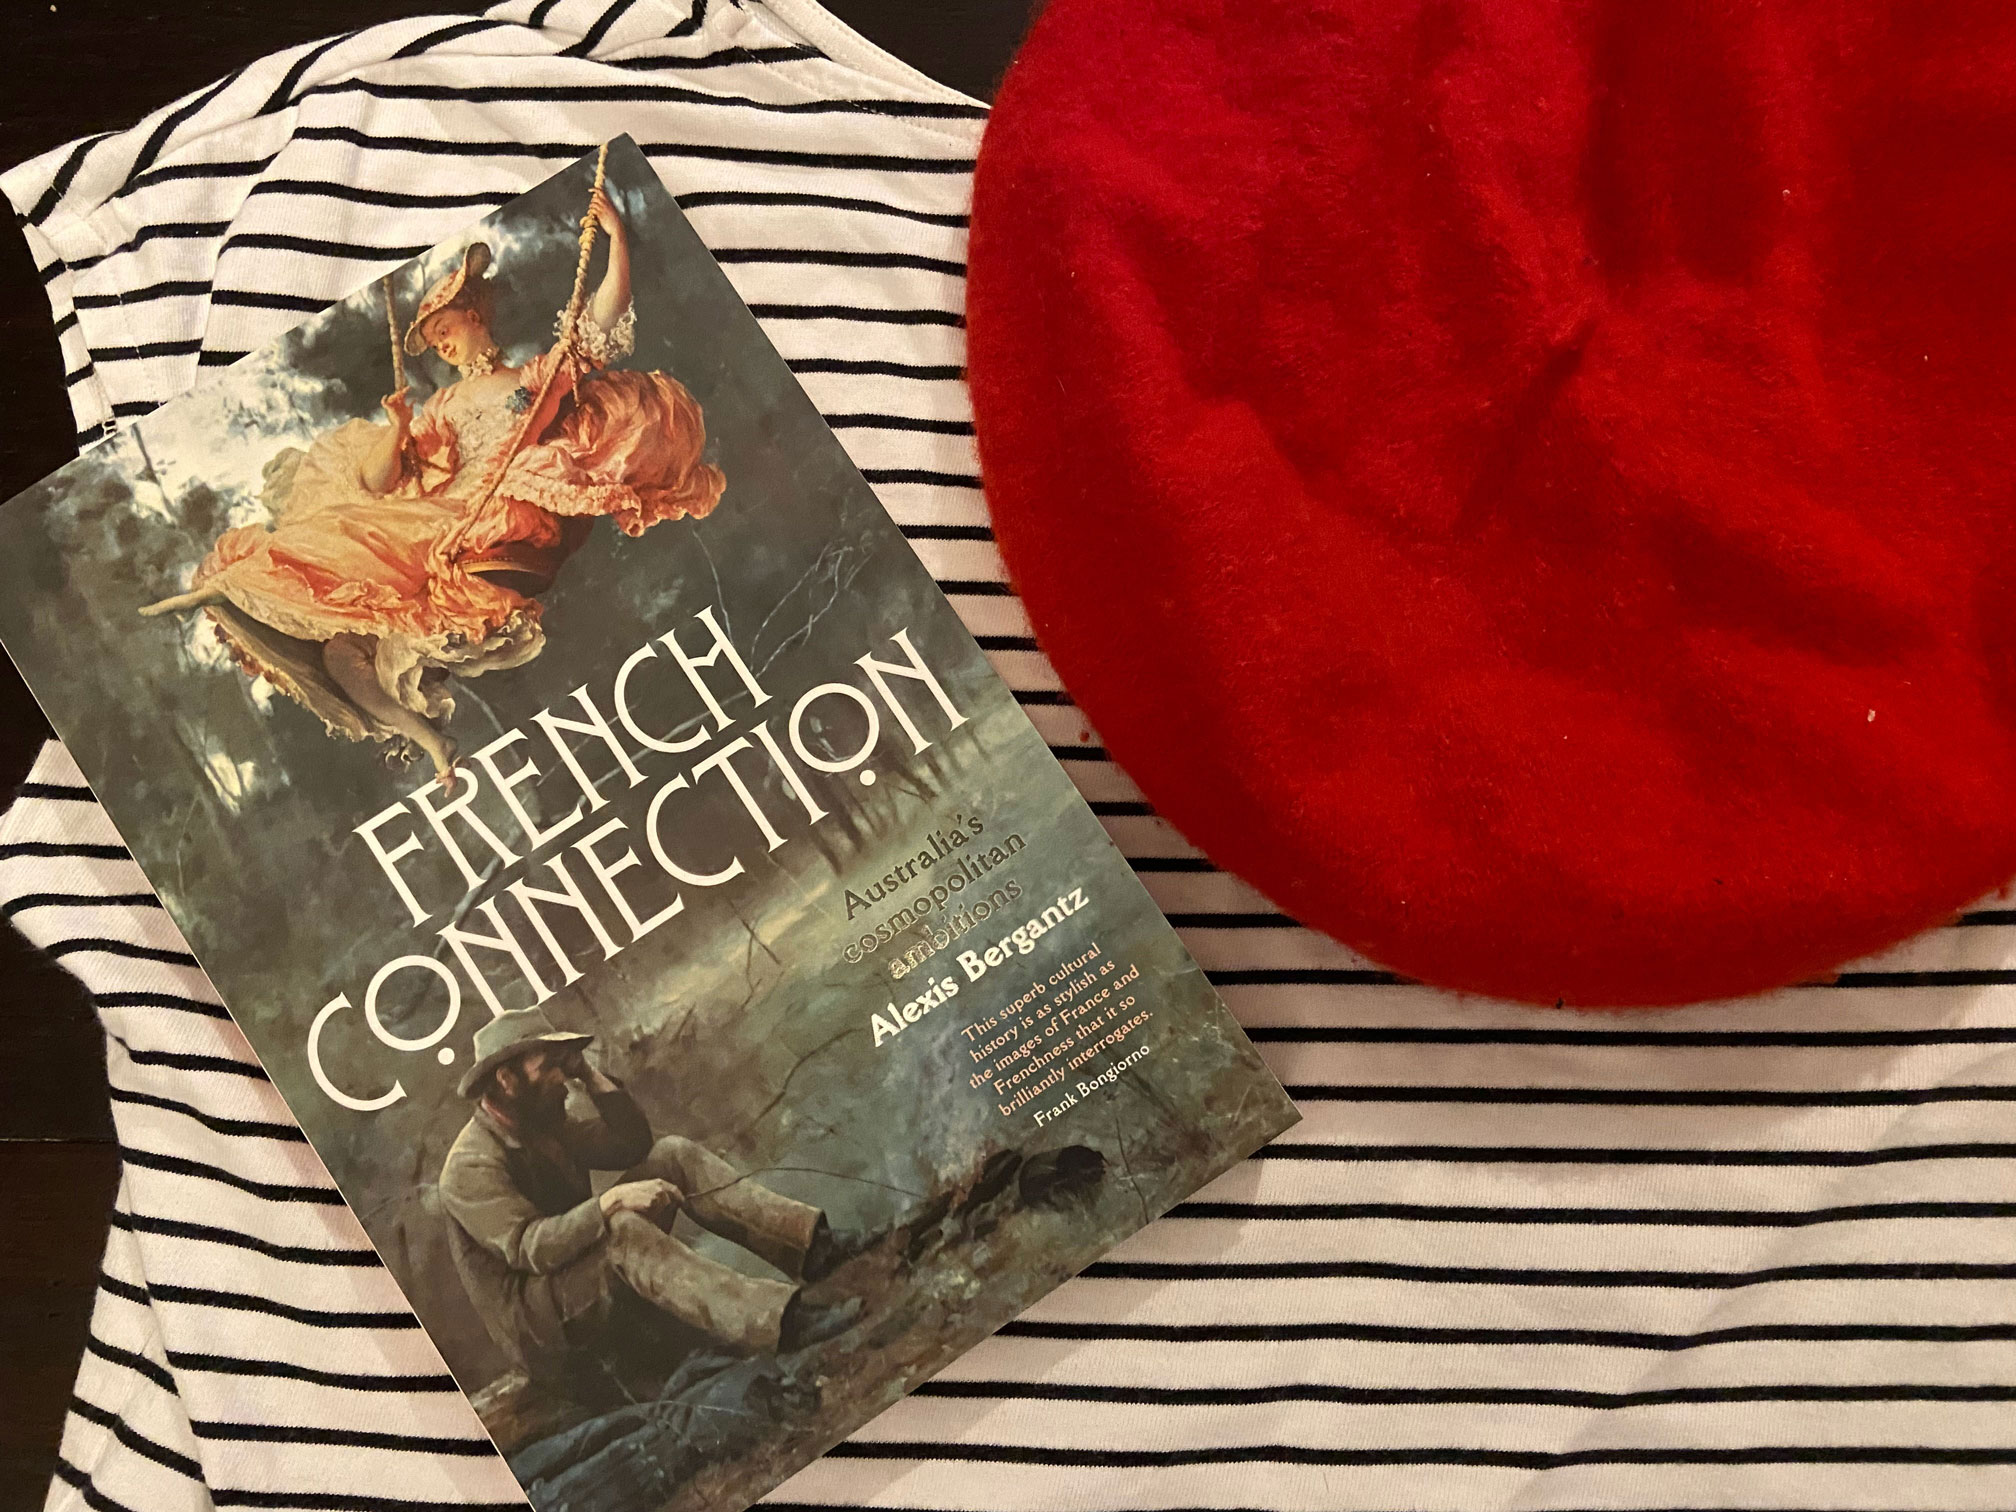 looking down at the book on top of a striped shirt and next to a red beret